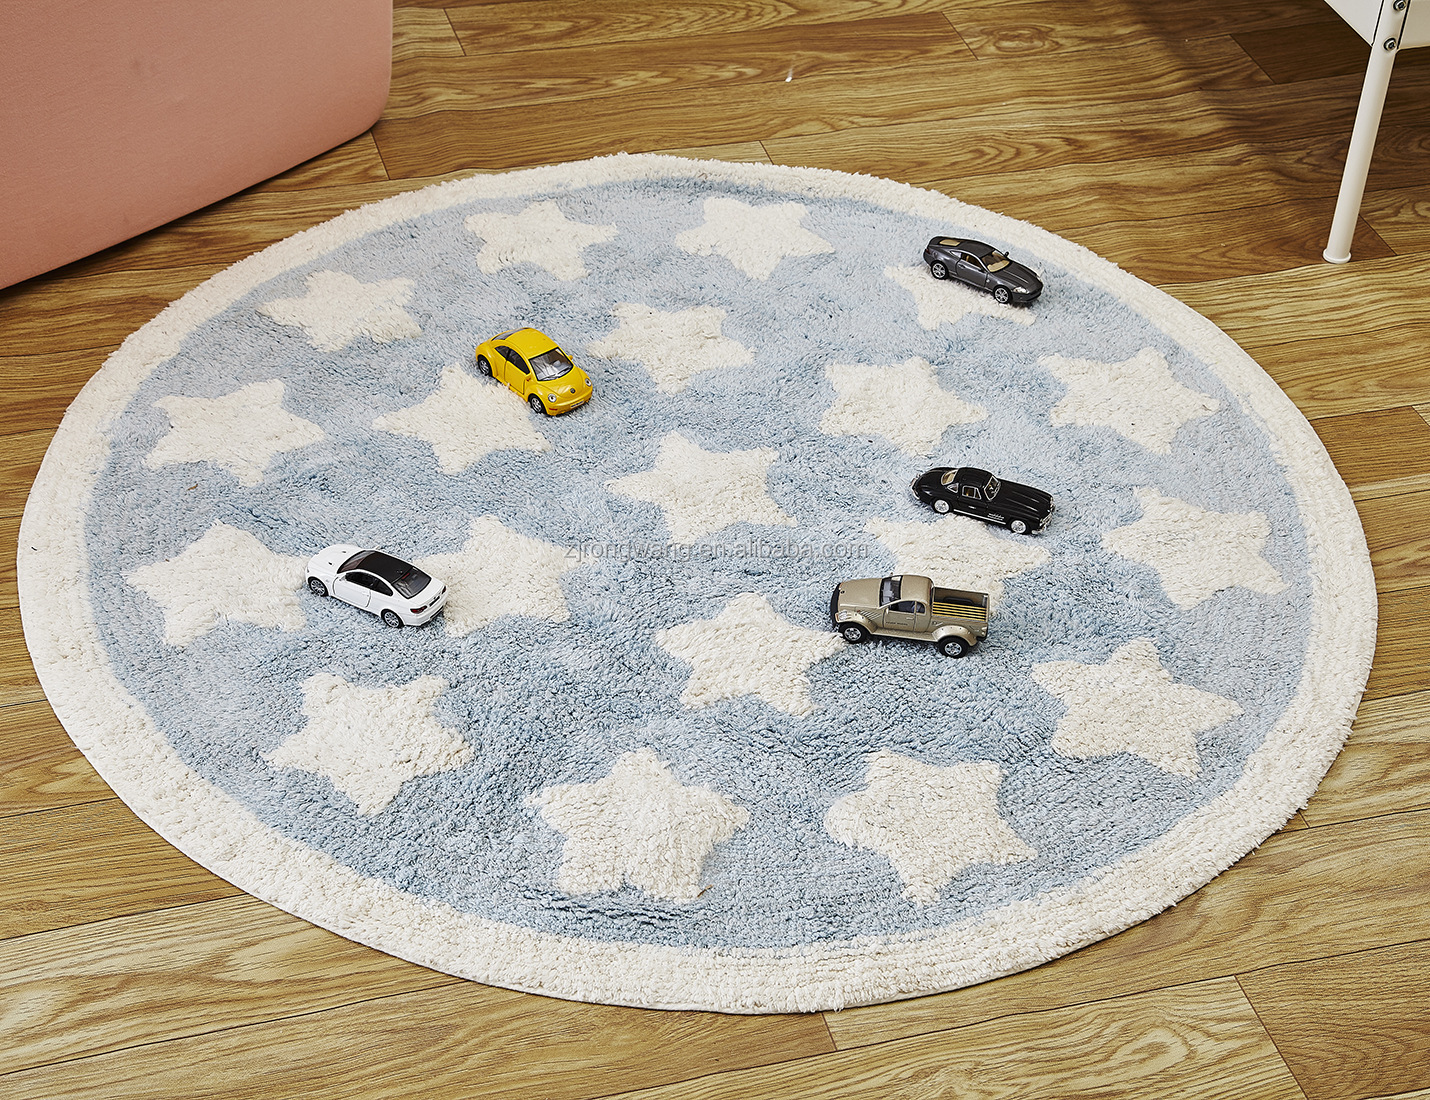 Hot selling stars circular cotton soft fuzzy floor mat baby crawling sleeping rugs paly mat for living room decoration